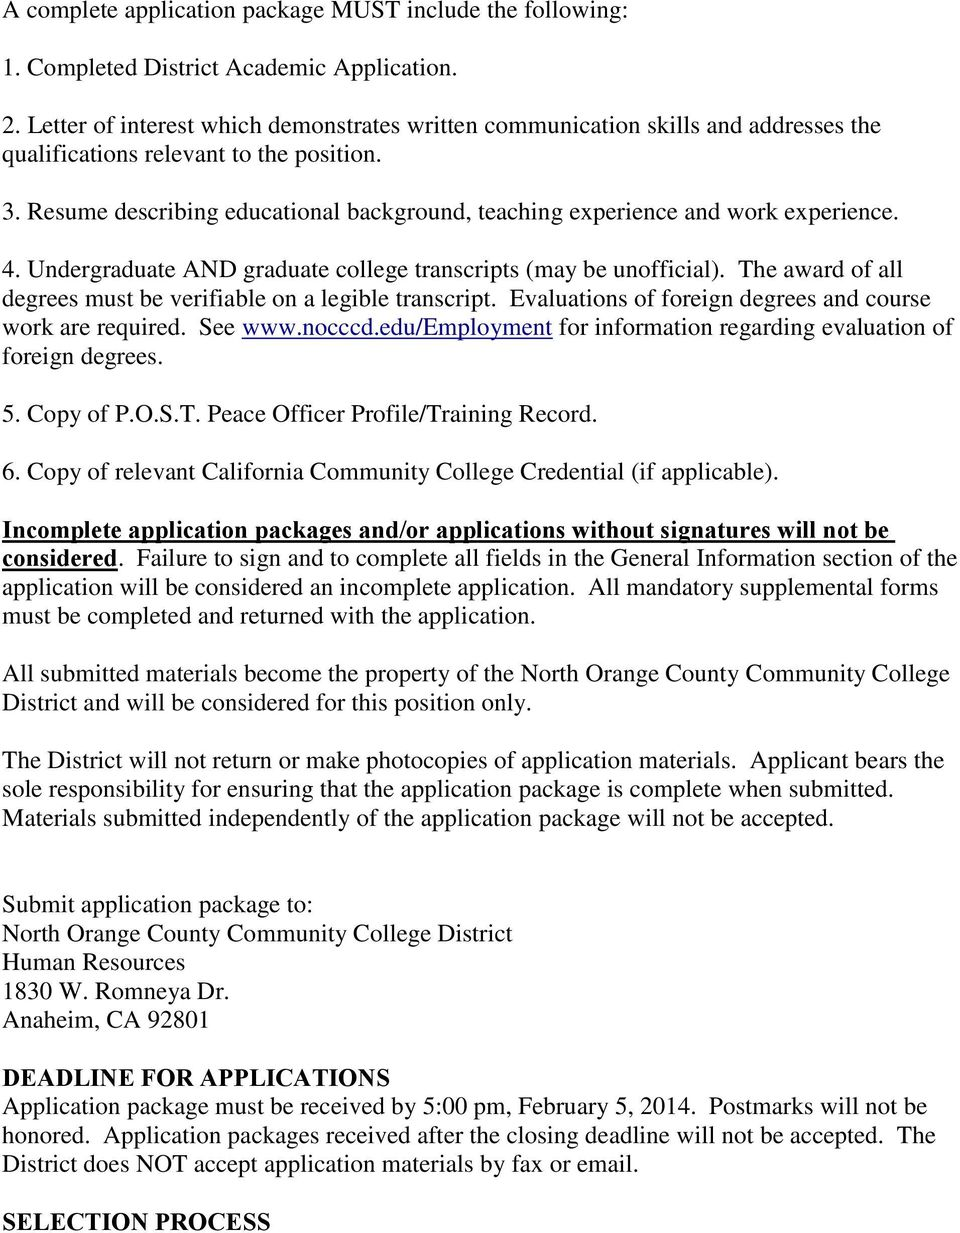 Resume describing educational background, teaching experience and work experience. 4. Undergraduate AND graduate college transcripts (may be unofficial).